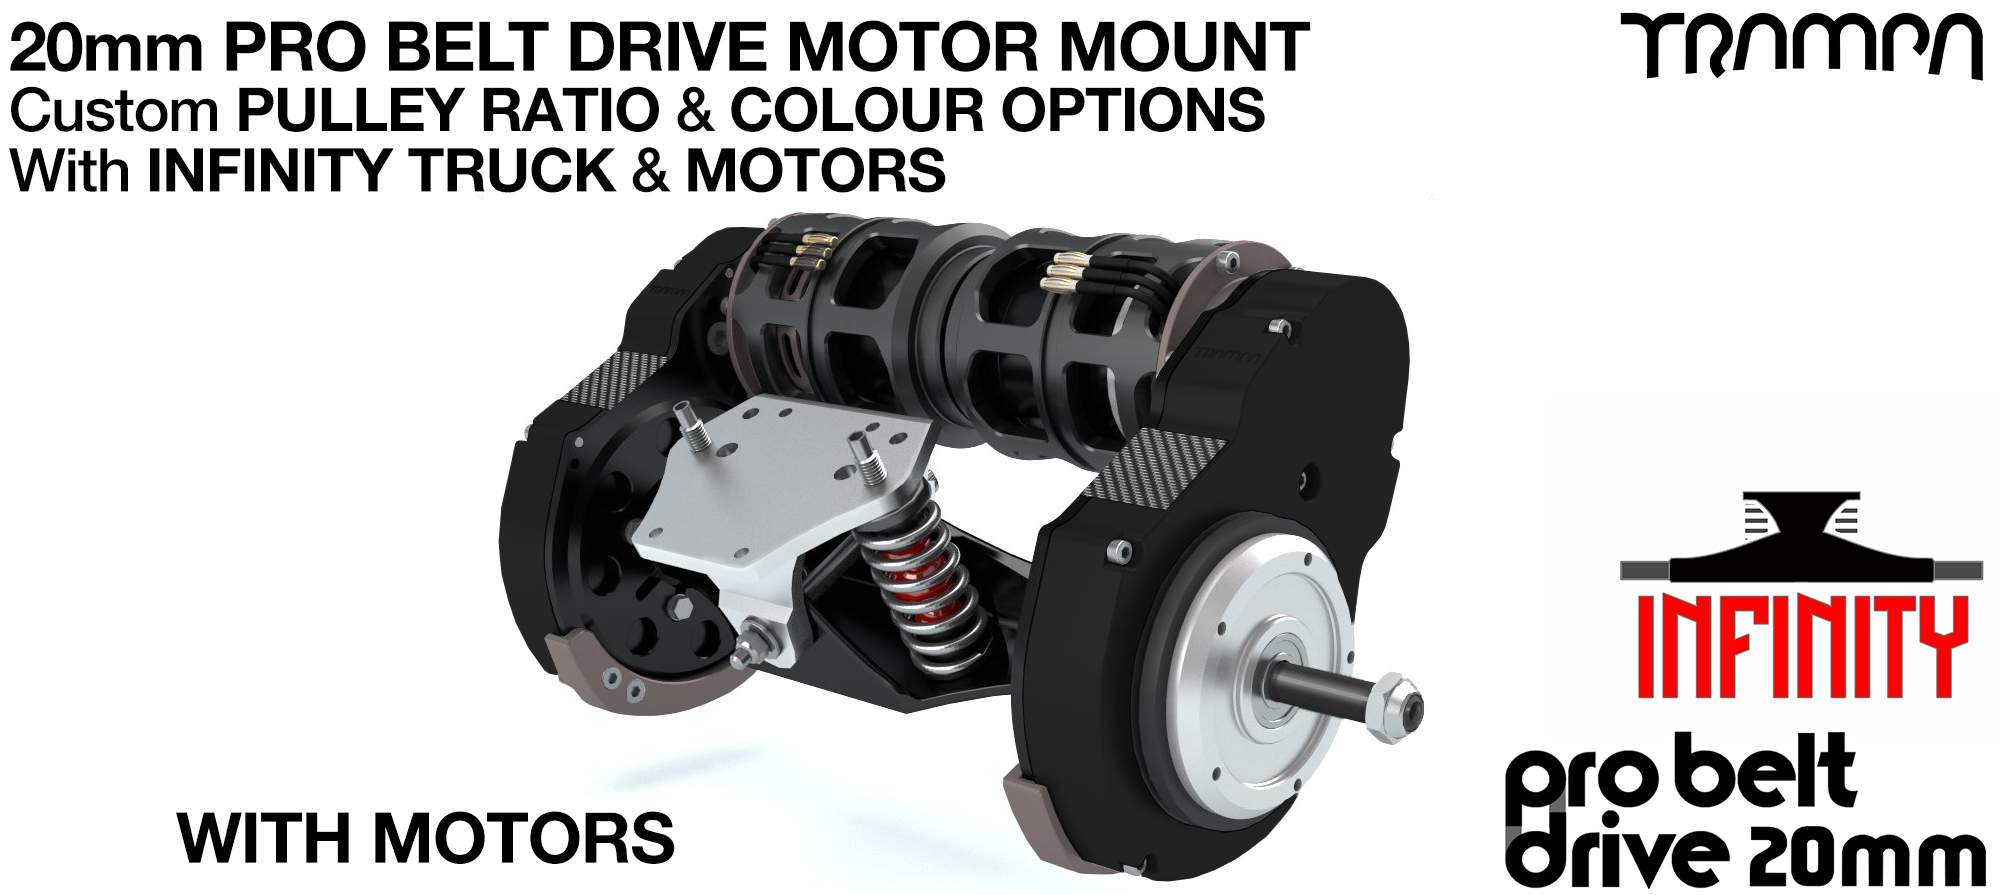 TRAMPA's 16mm  PRO Belt Drive TWIN Motor Mountainboard WITH Motors Mountred on a Precision INFINITY Truck